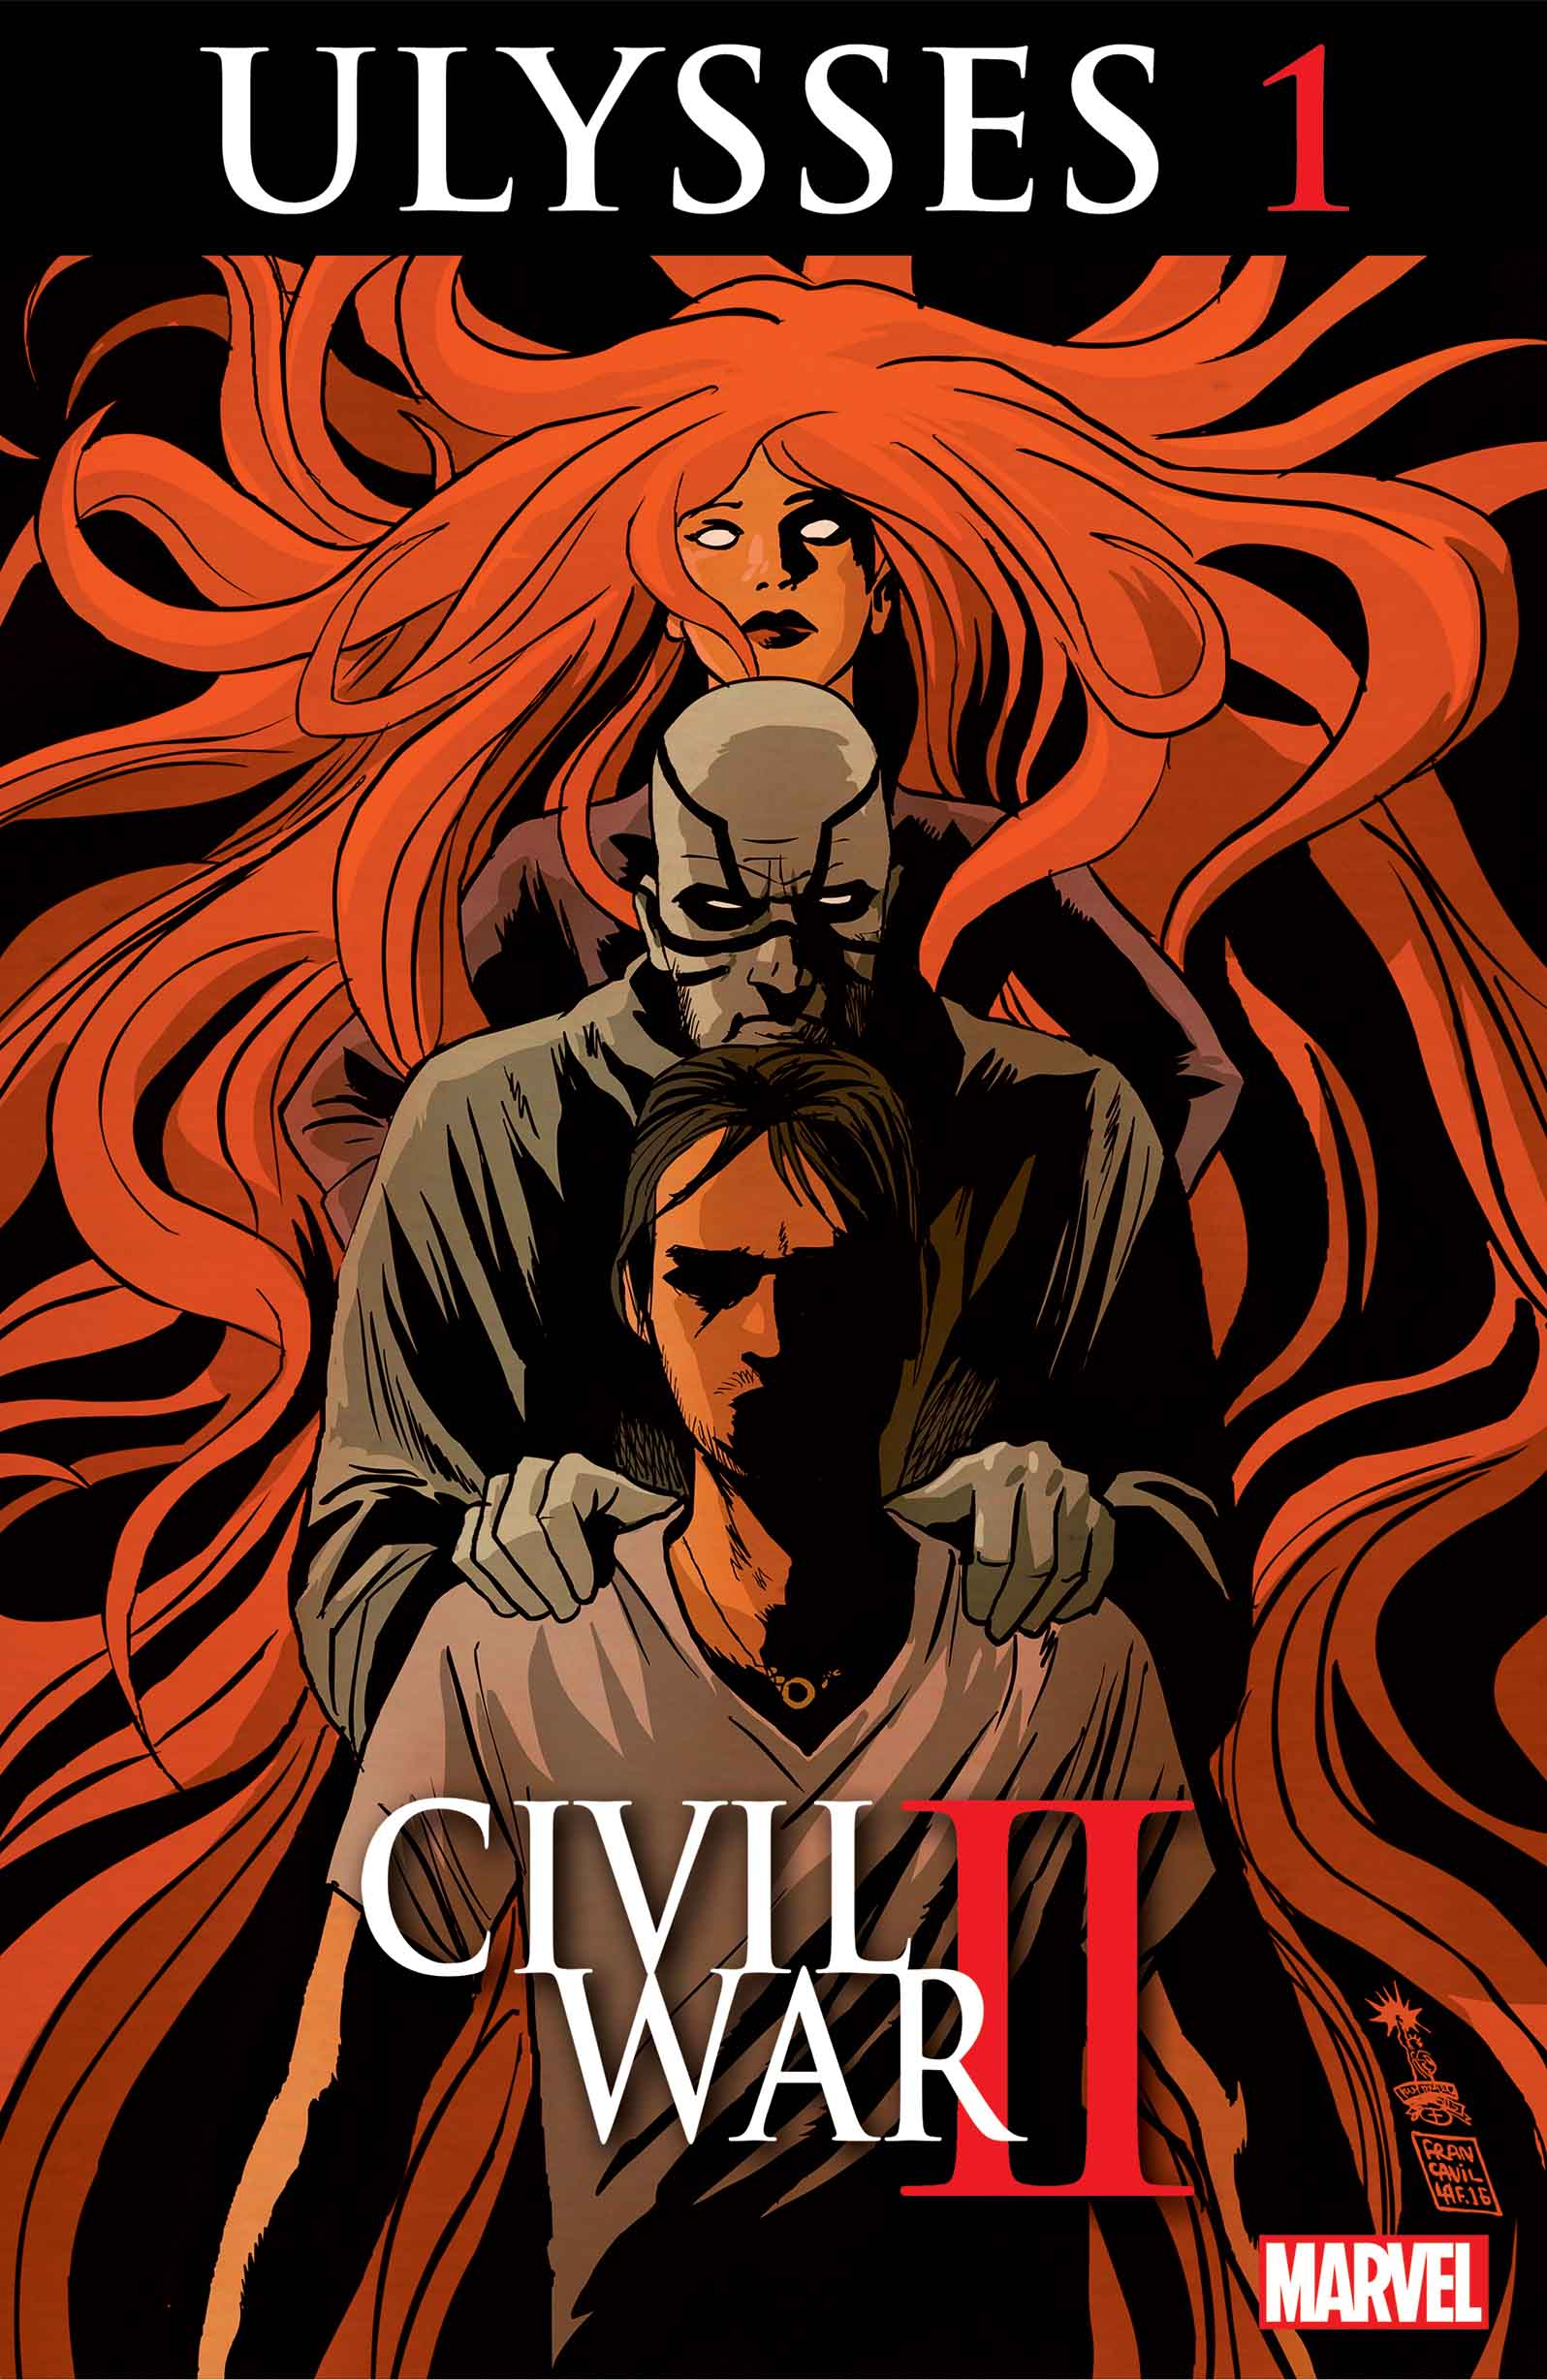 CIVIL WAR II: ULYSSES #1 – The Prequel to the Biggest Comic Event of the Year!